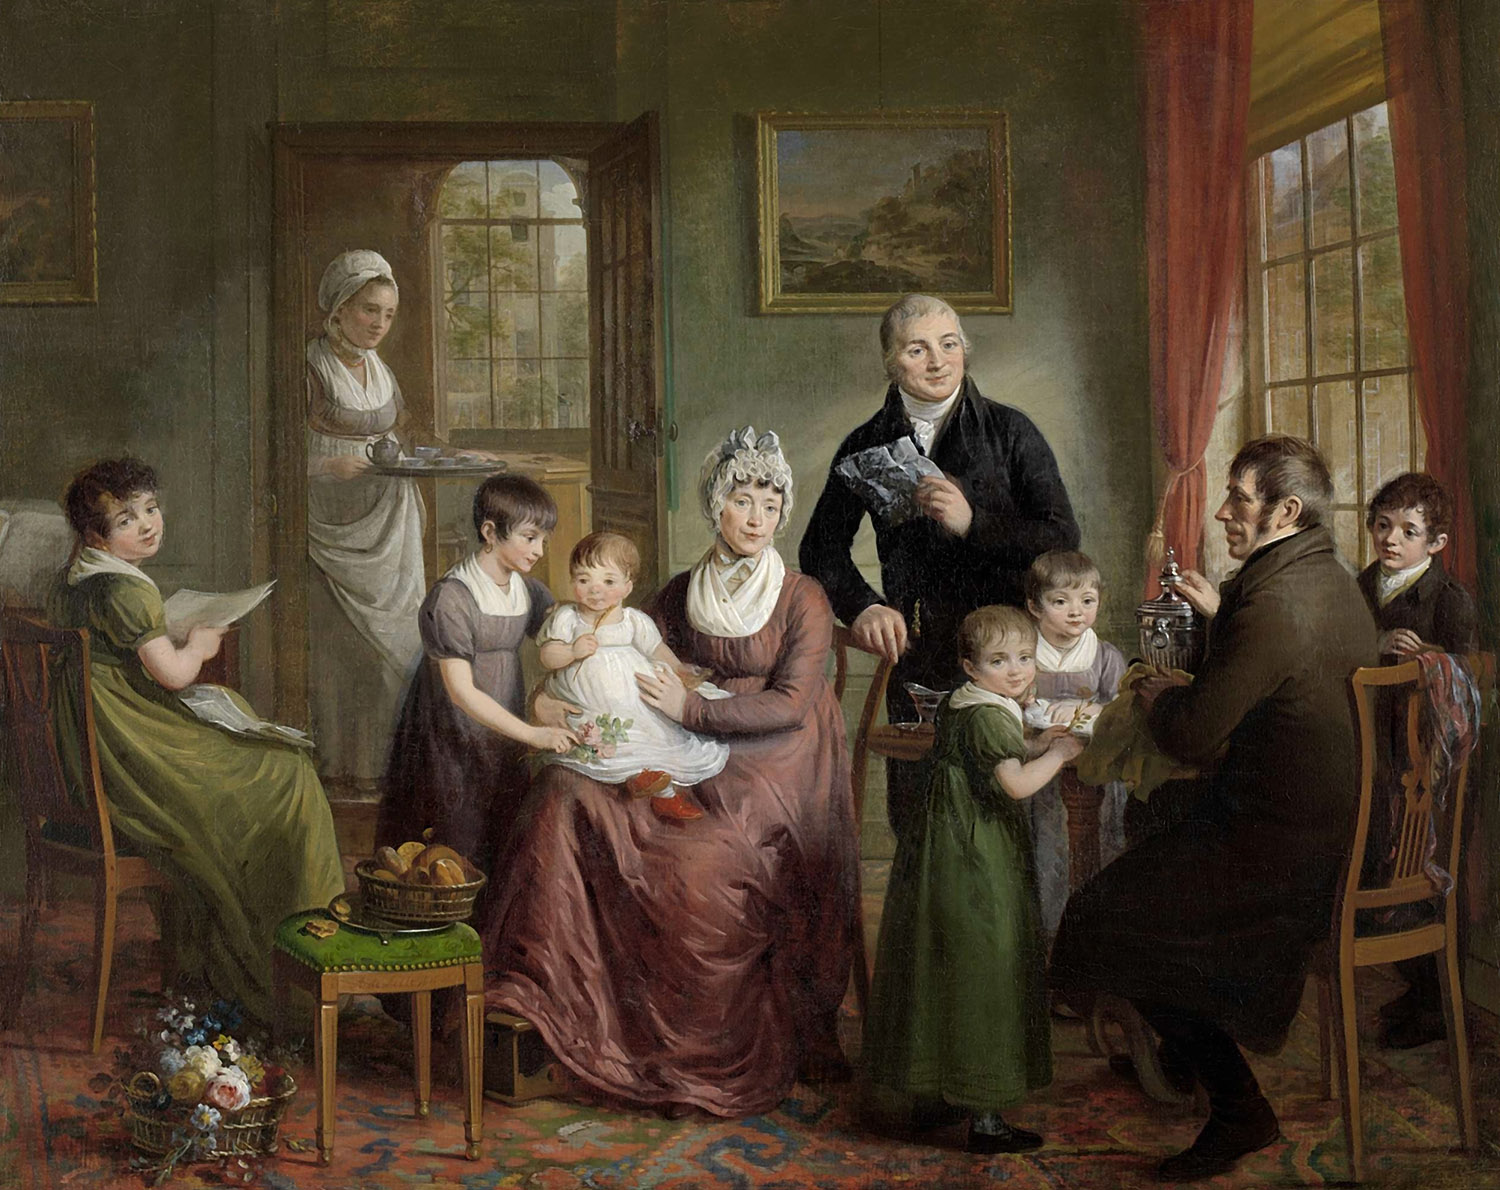 Portrait of the Family of Adriaan Bonebakker with Dirk L. Bennewitz, Artist: Adriaan de Lelie, 1809, Amsterdam, Netherlands, Original painting